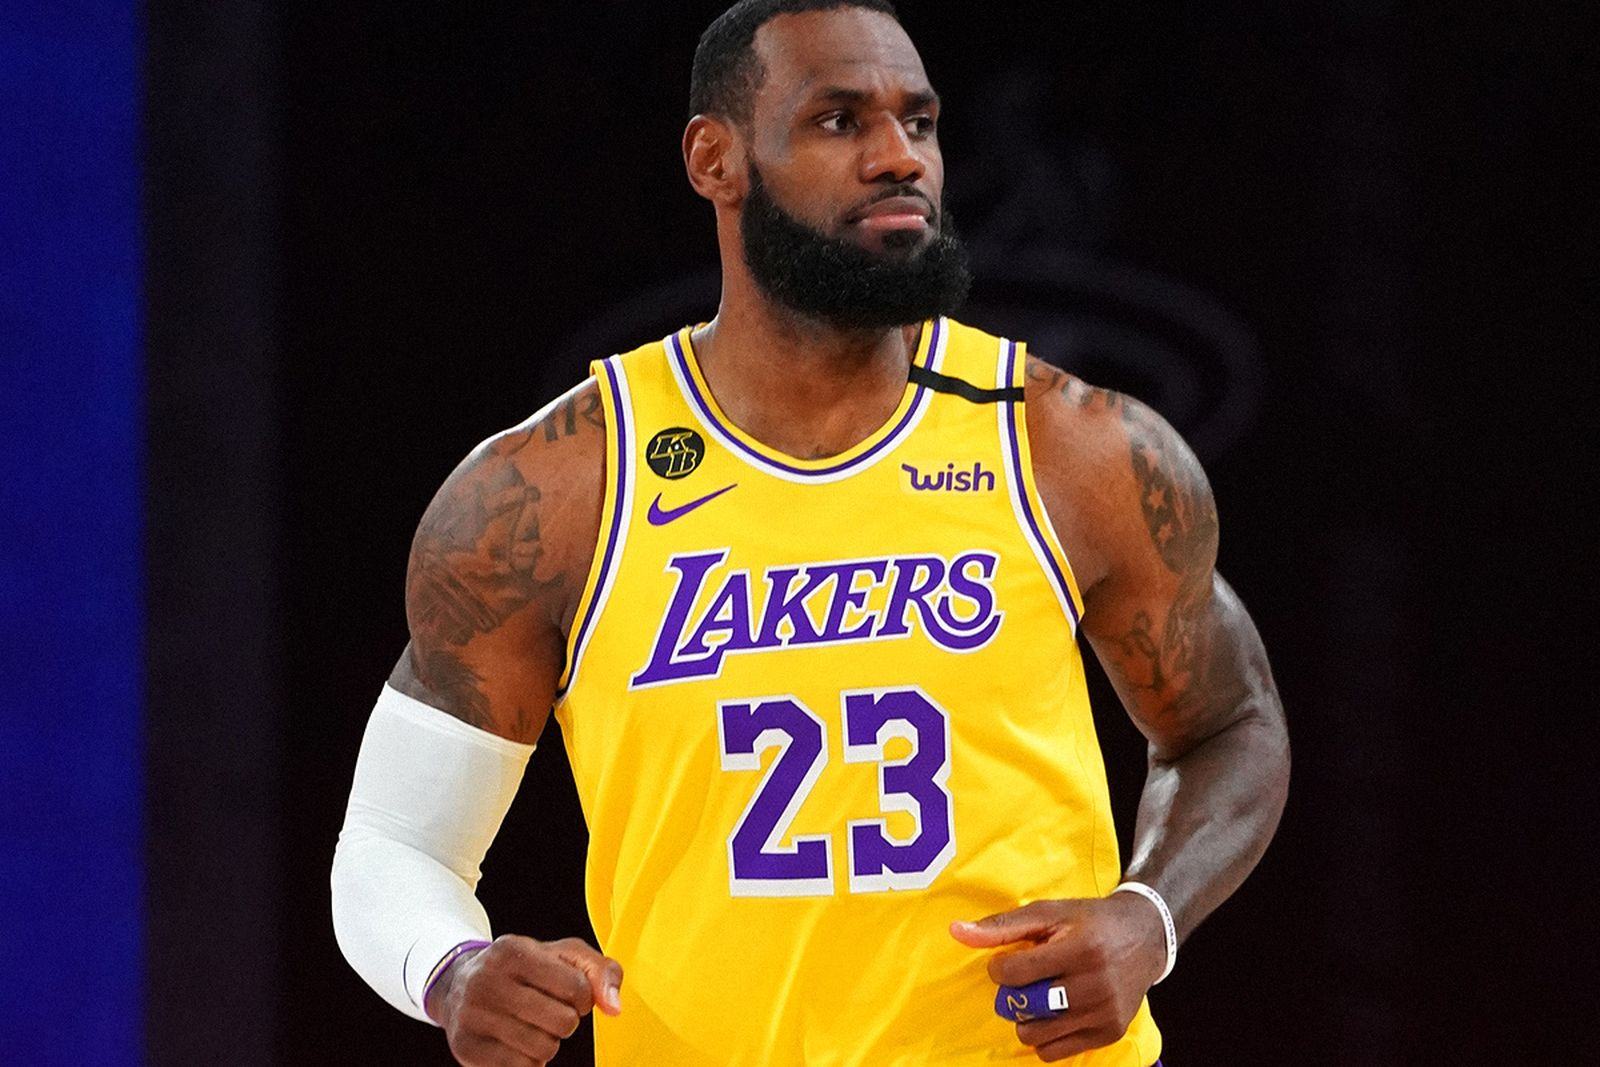 players-lebron-james-could-sign-to-his-brand-main